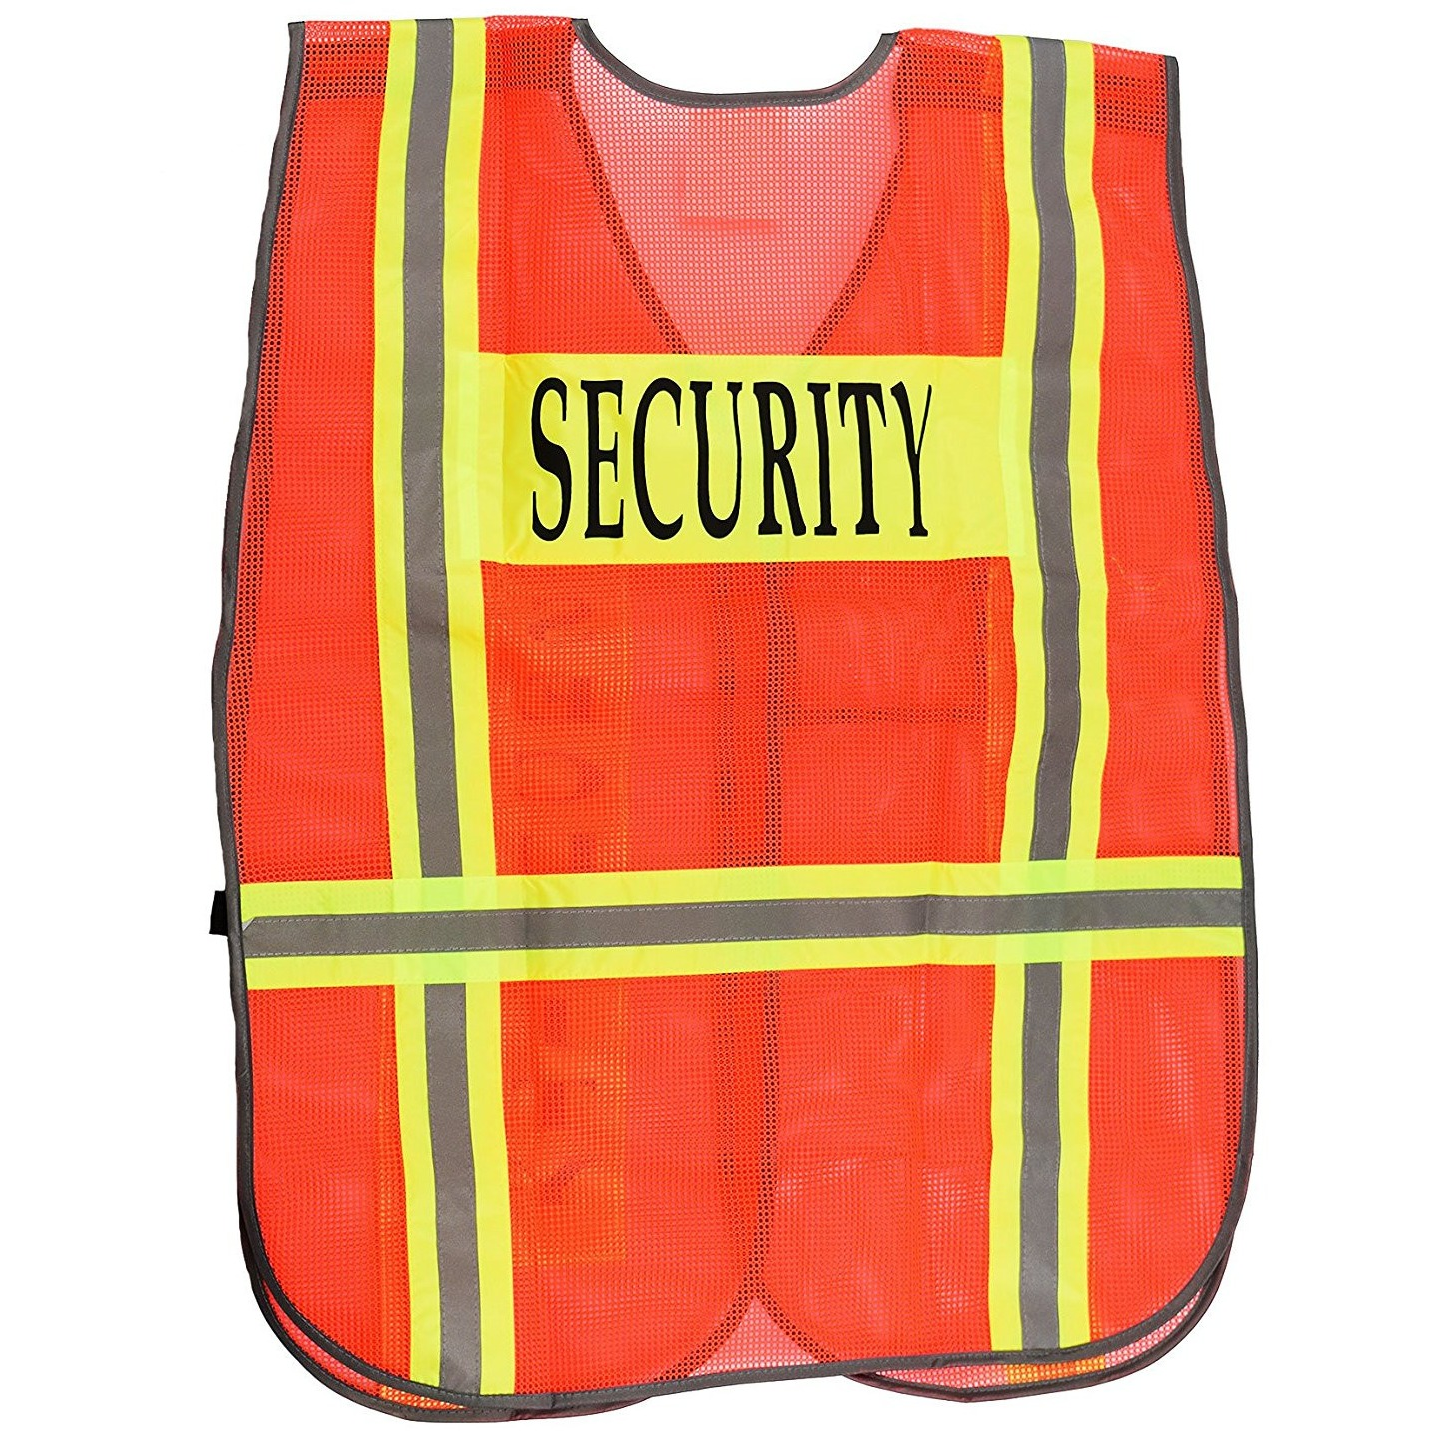 Security Safety Vest with Reflective Strips, One Size Fits All - Neon Orange / 50-Pack